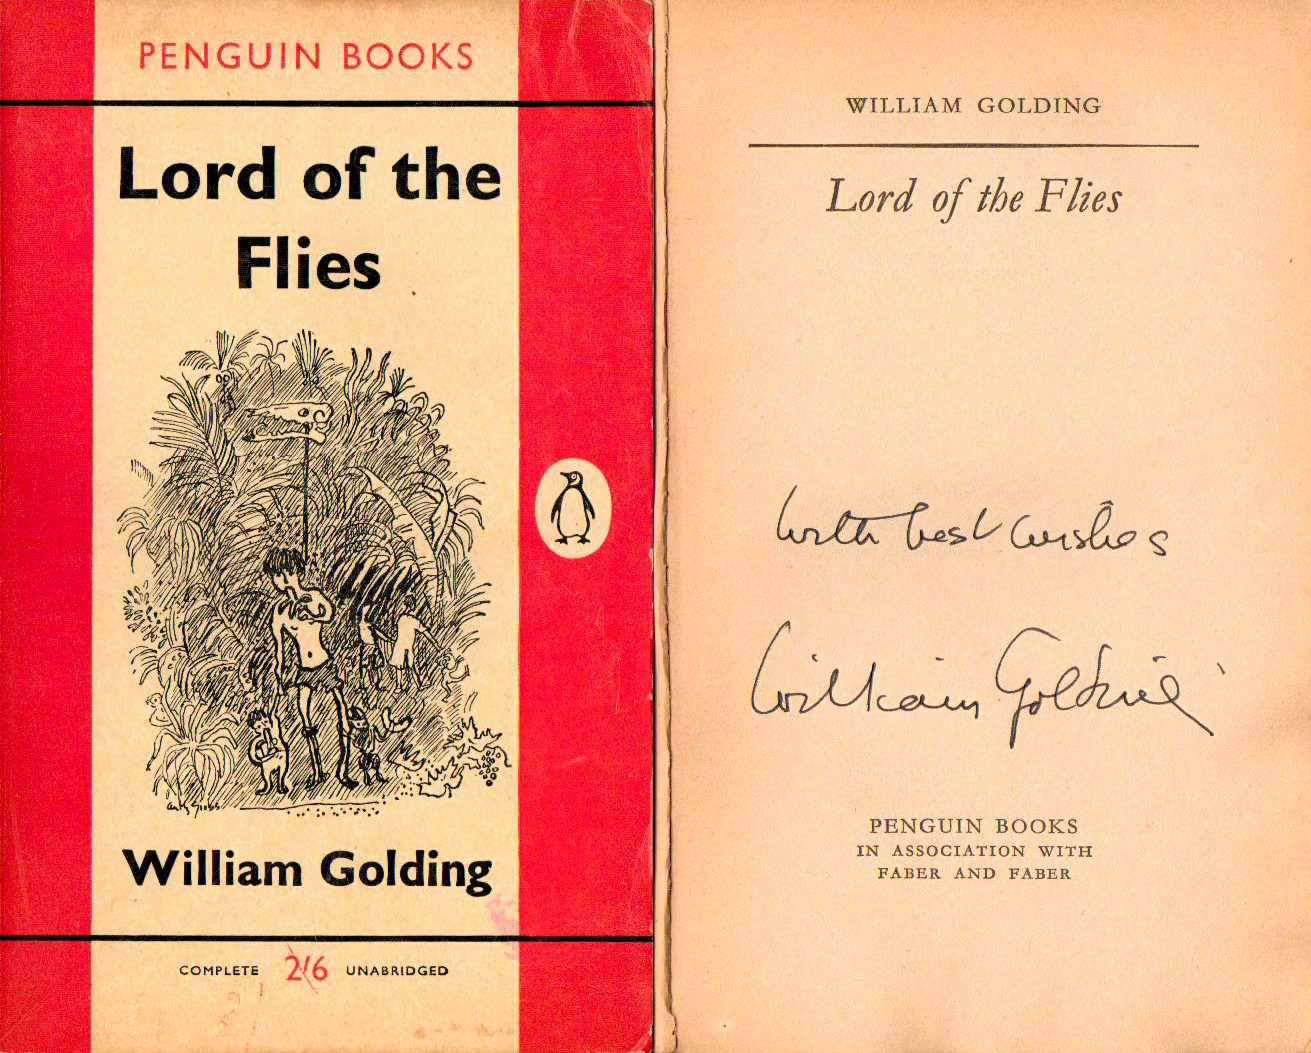 lord of the flies by william golding commentary essay Lord of the flies by william golding this essay lord of the flies by william golding and other 64,000+ term papers, college essay examples and free essays are.